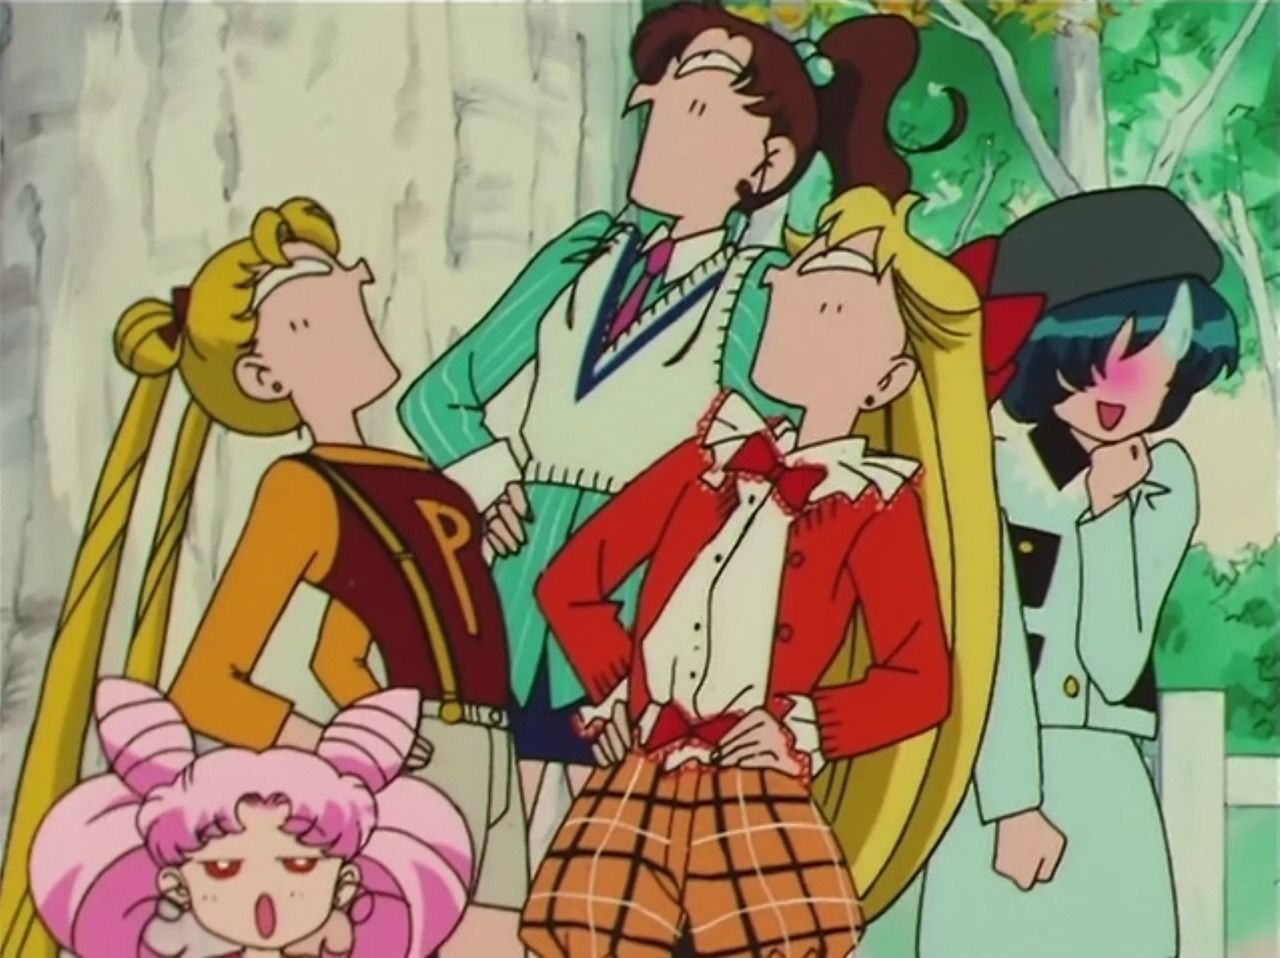 Okay this is totally me and my two best friends when we make a draw the squad sailor moon edition ccuart Image collections